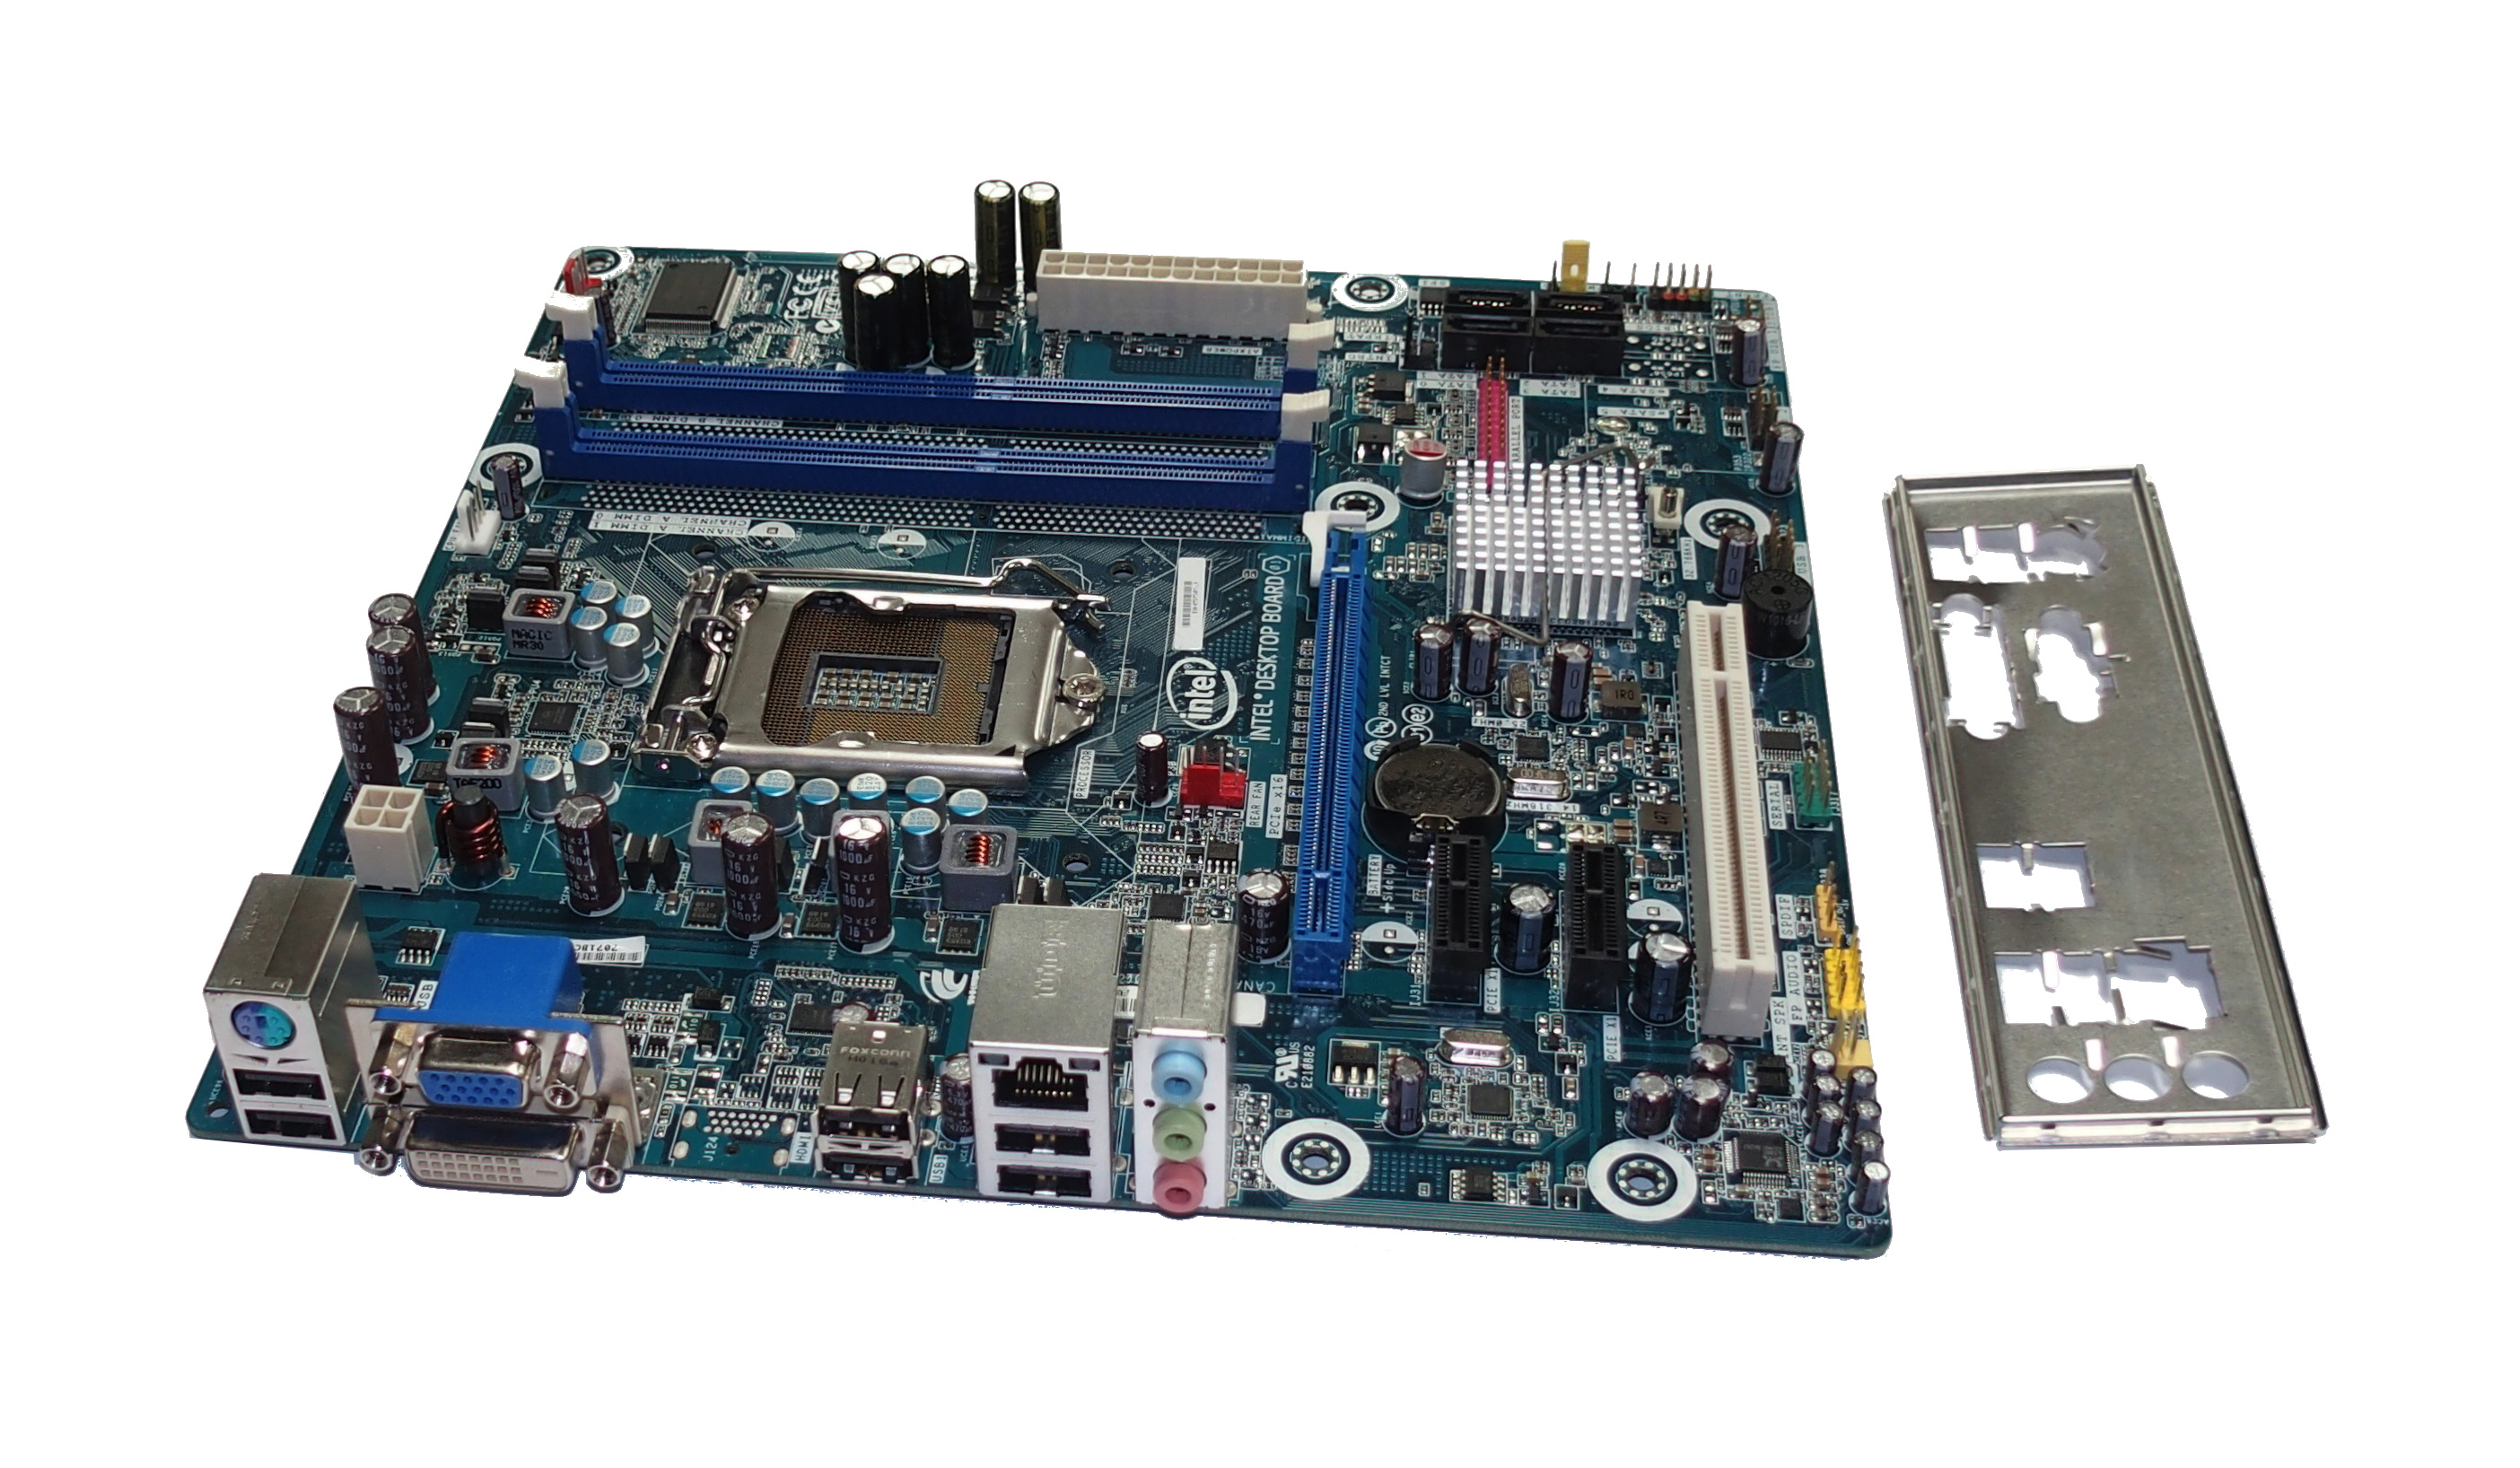 INTEL DH55PJ MOTHERBOARD DRIVERS FOR WINDOWS 8